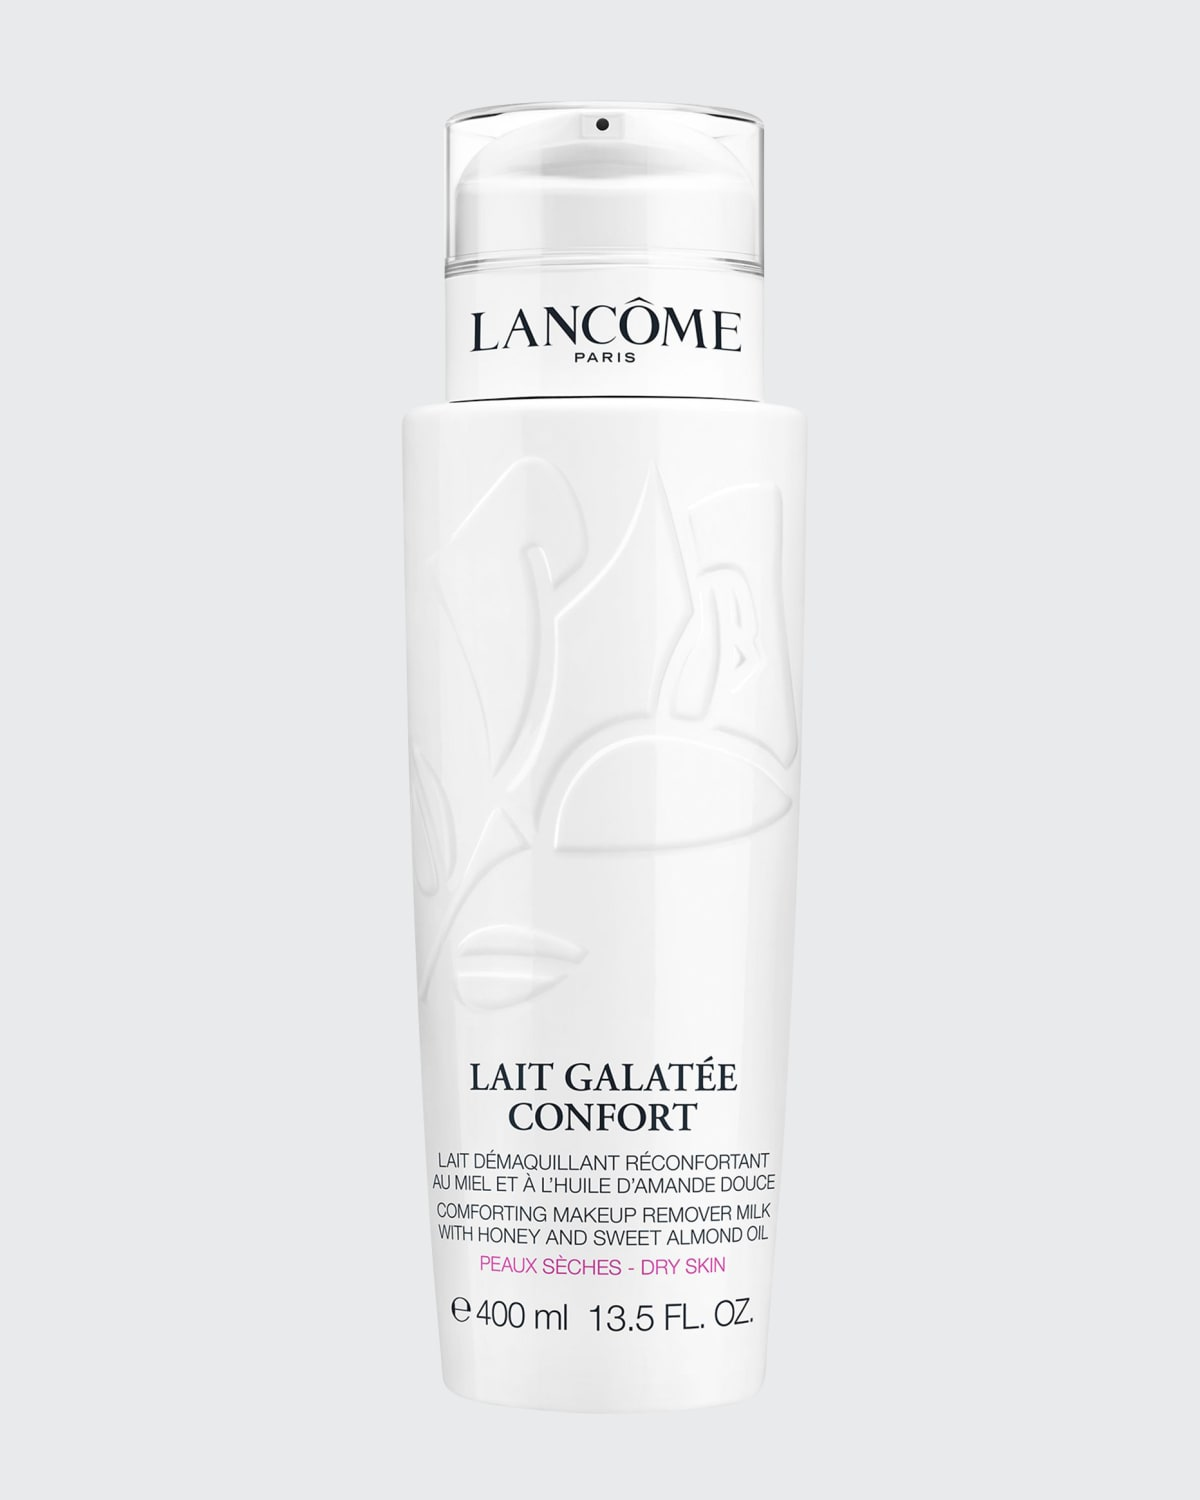 Lait Galatee Confort Comforting Makeup Remover